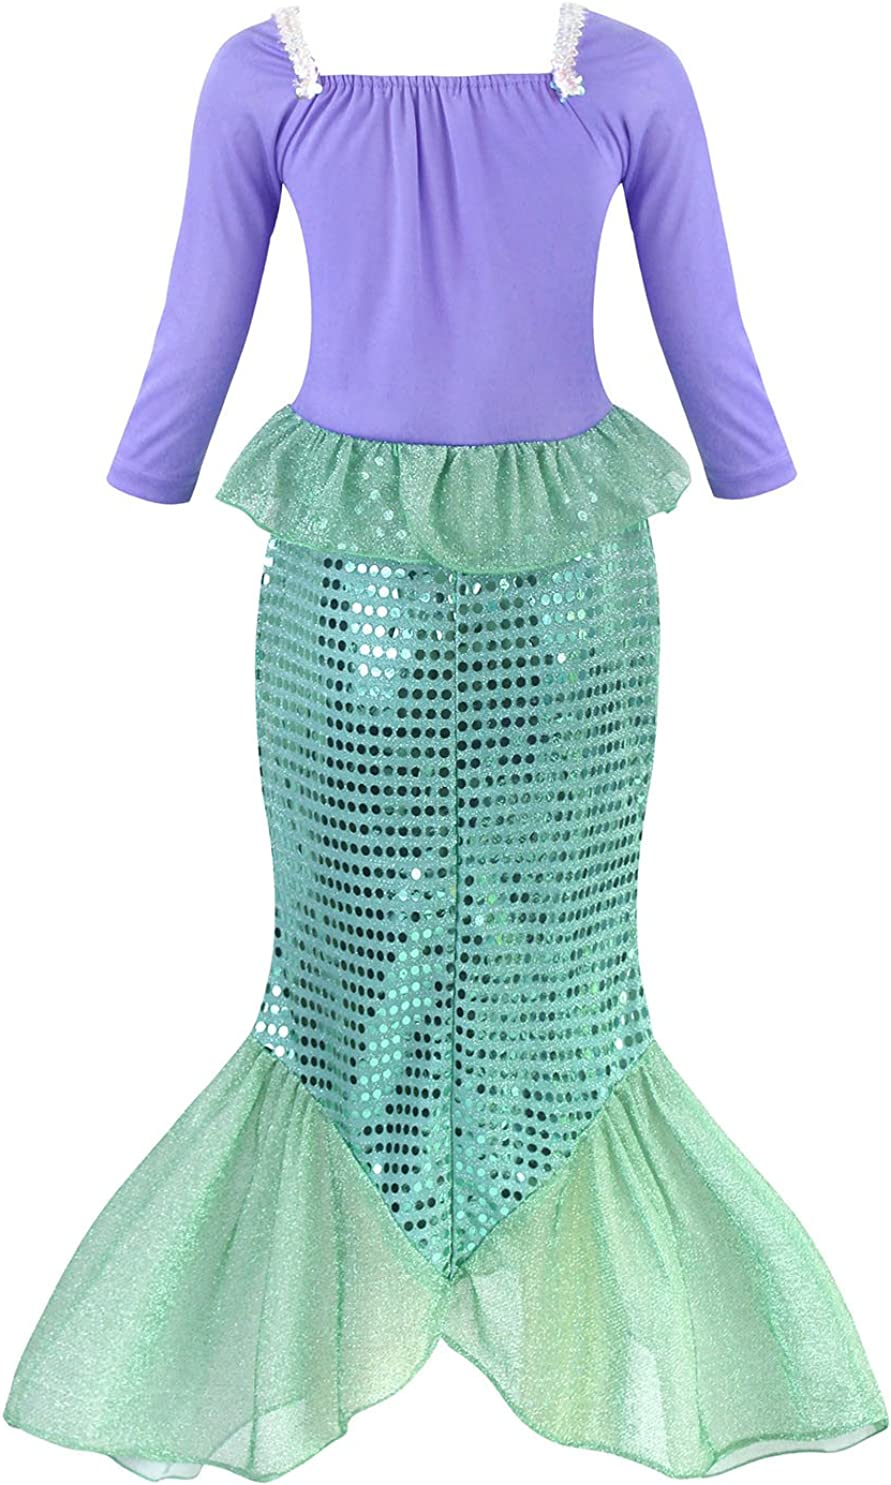 AmzBarley Mermaid Costume for Girls Princess Halloween Fancy Party Dress Up Mermaid Sequins Outfits